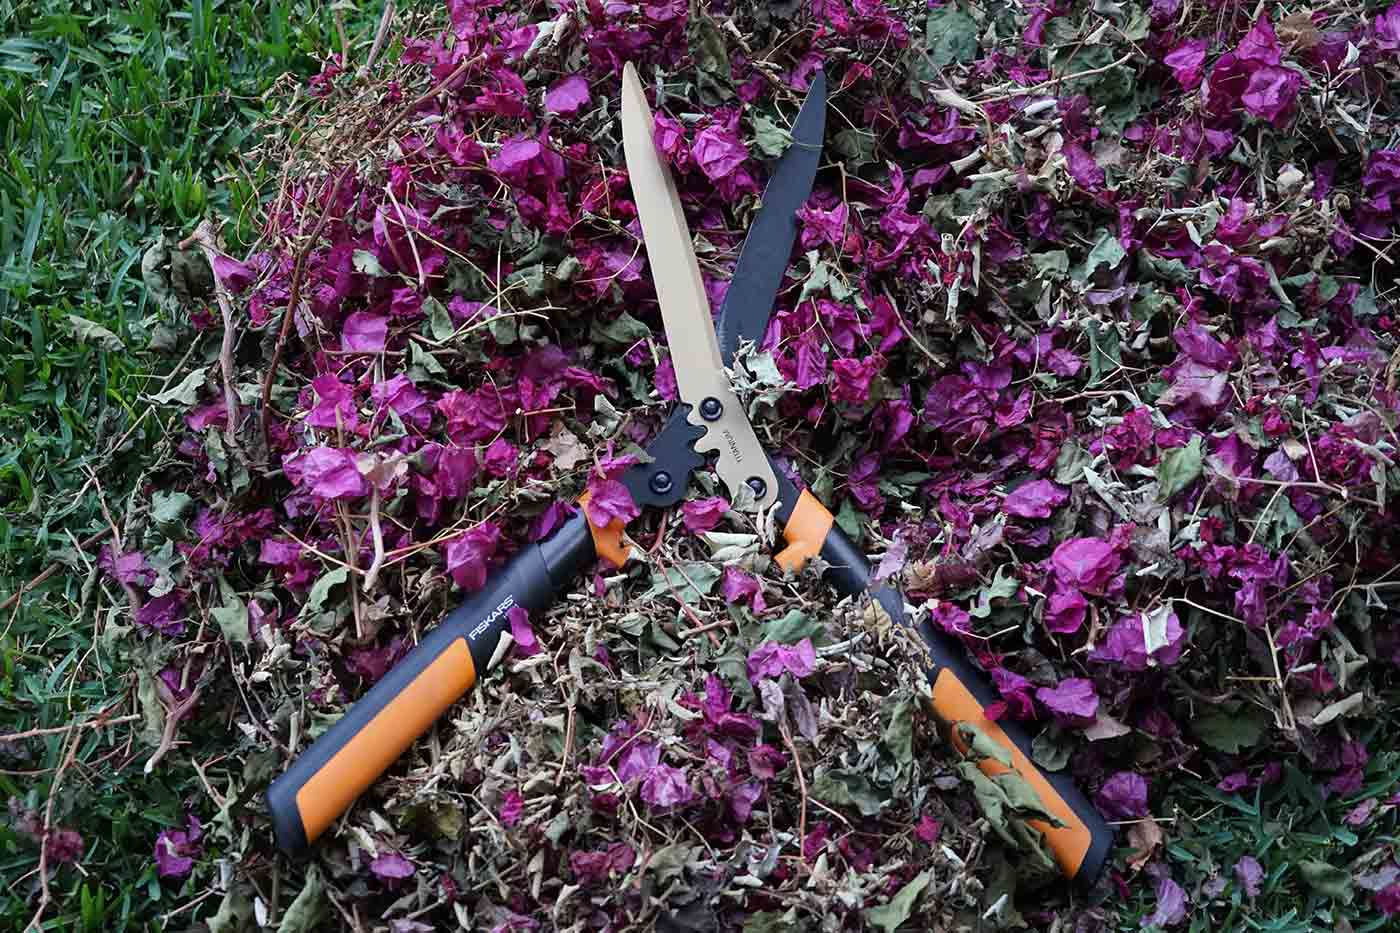 dry leaves and flowers carbon for composting